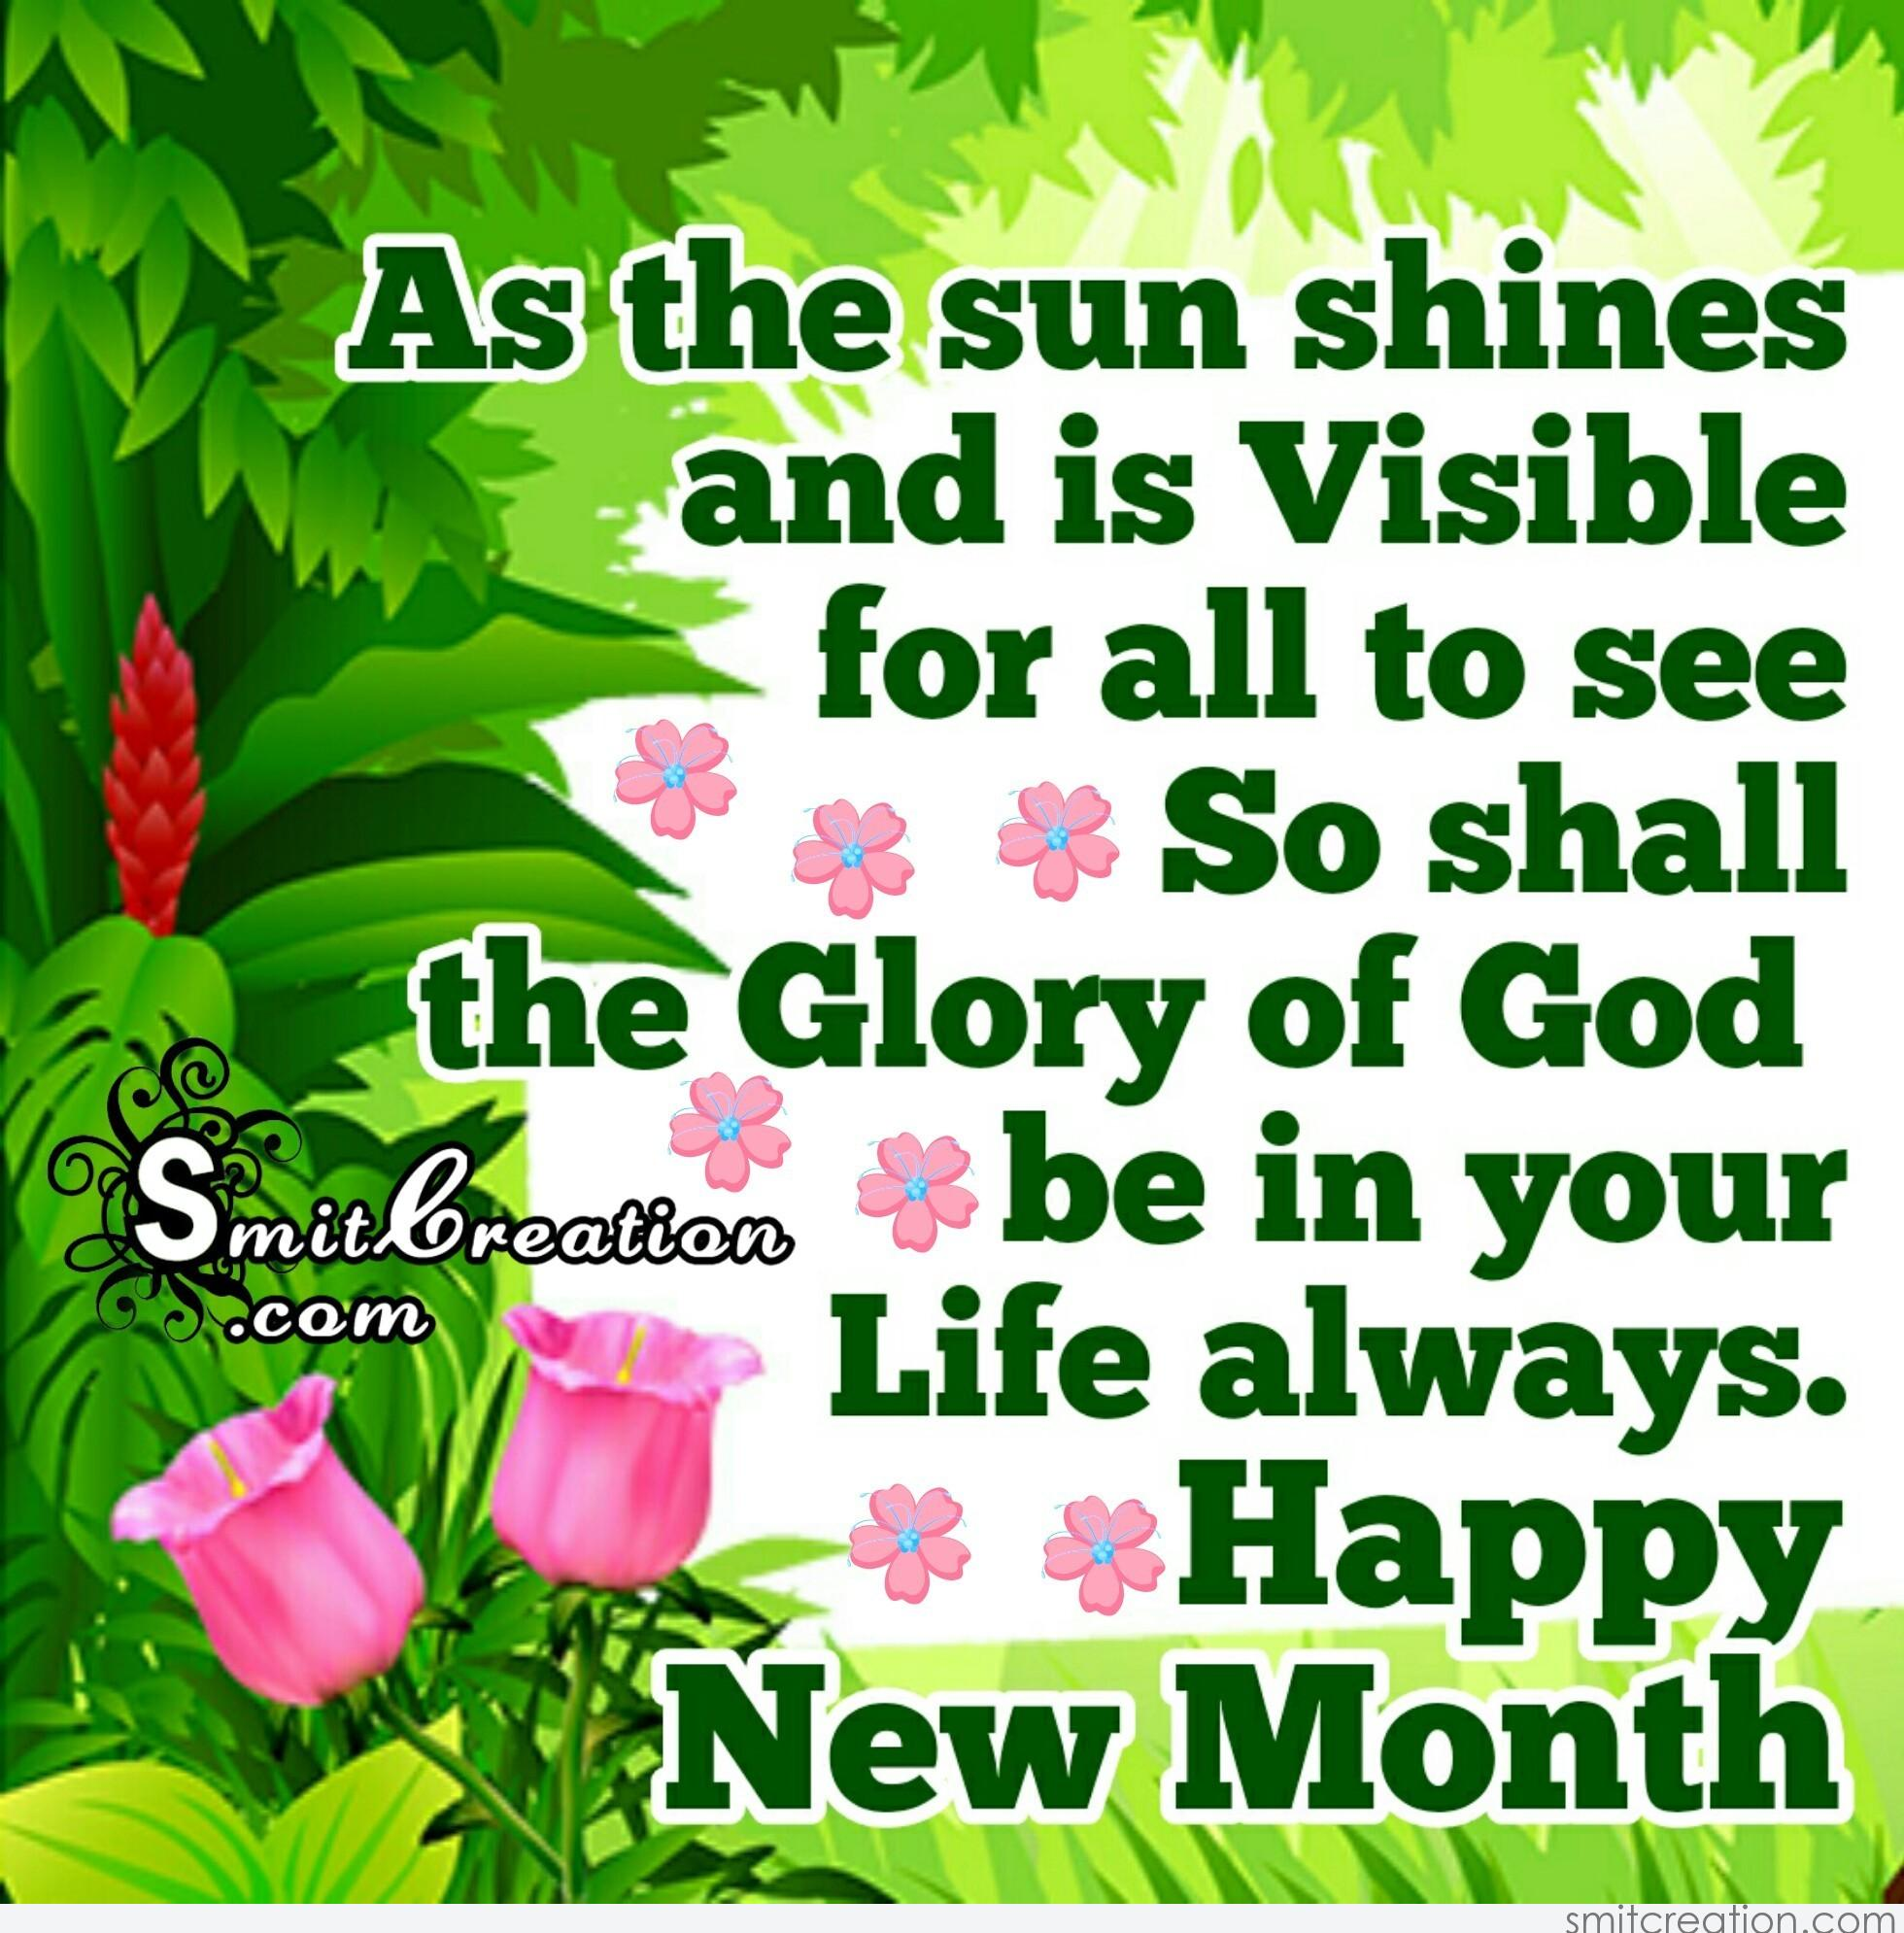 New month greeting text message image collections greetings card happy new month the glory of god be in your life always m4hsunfo